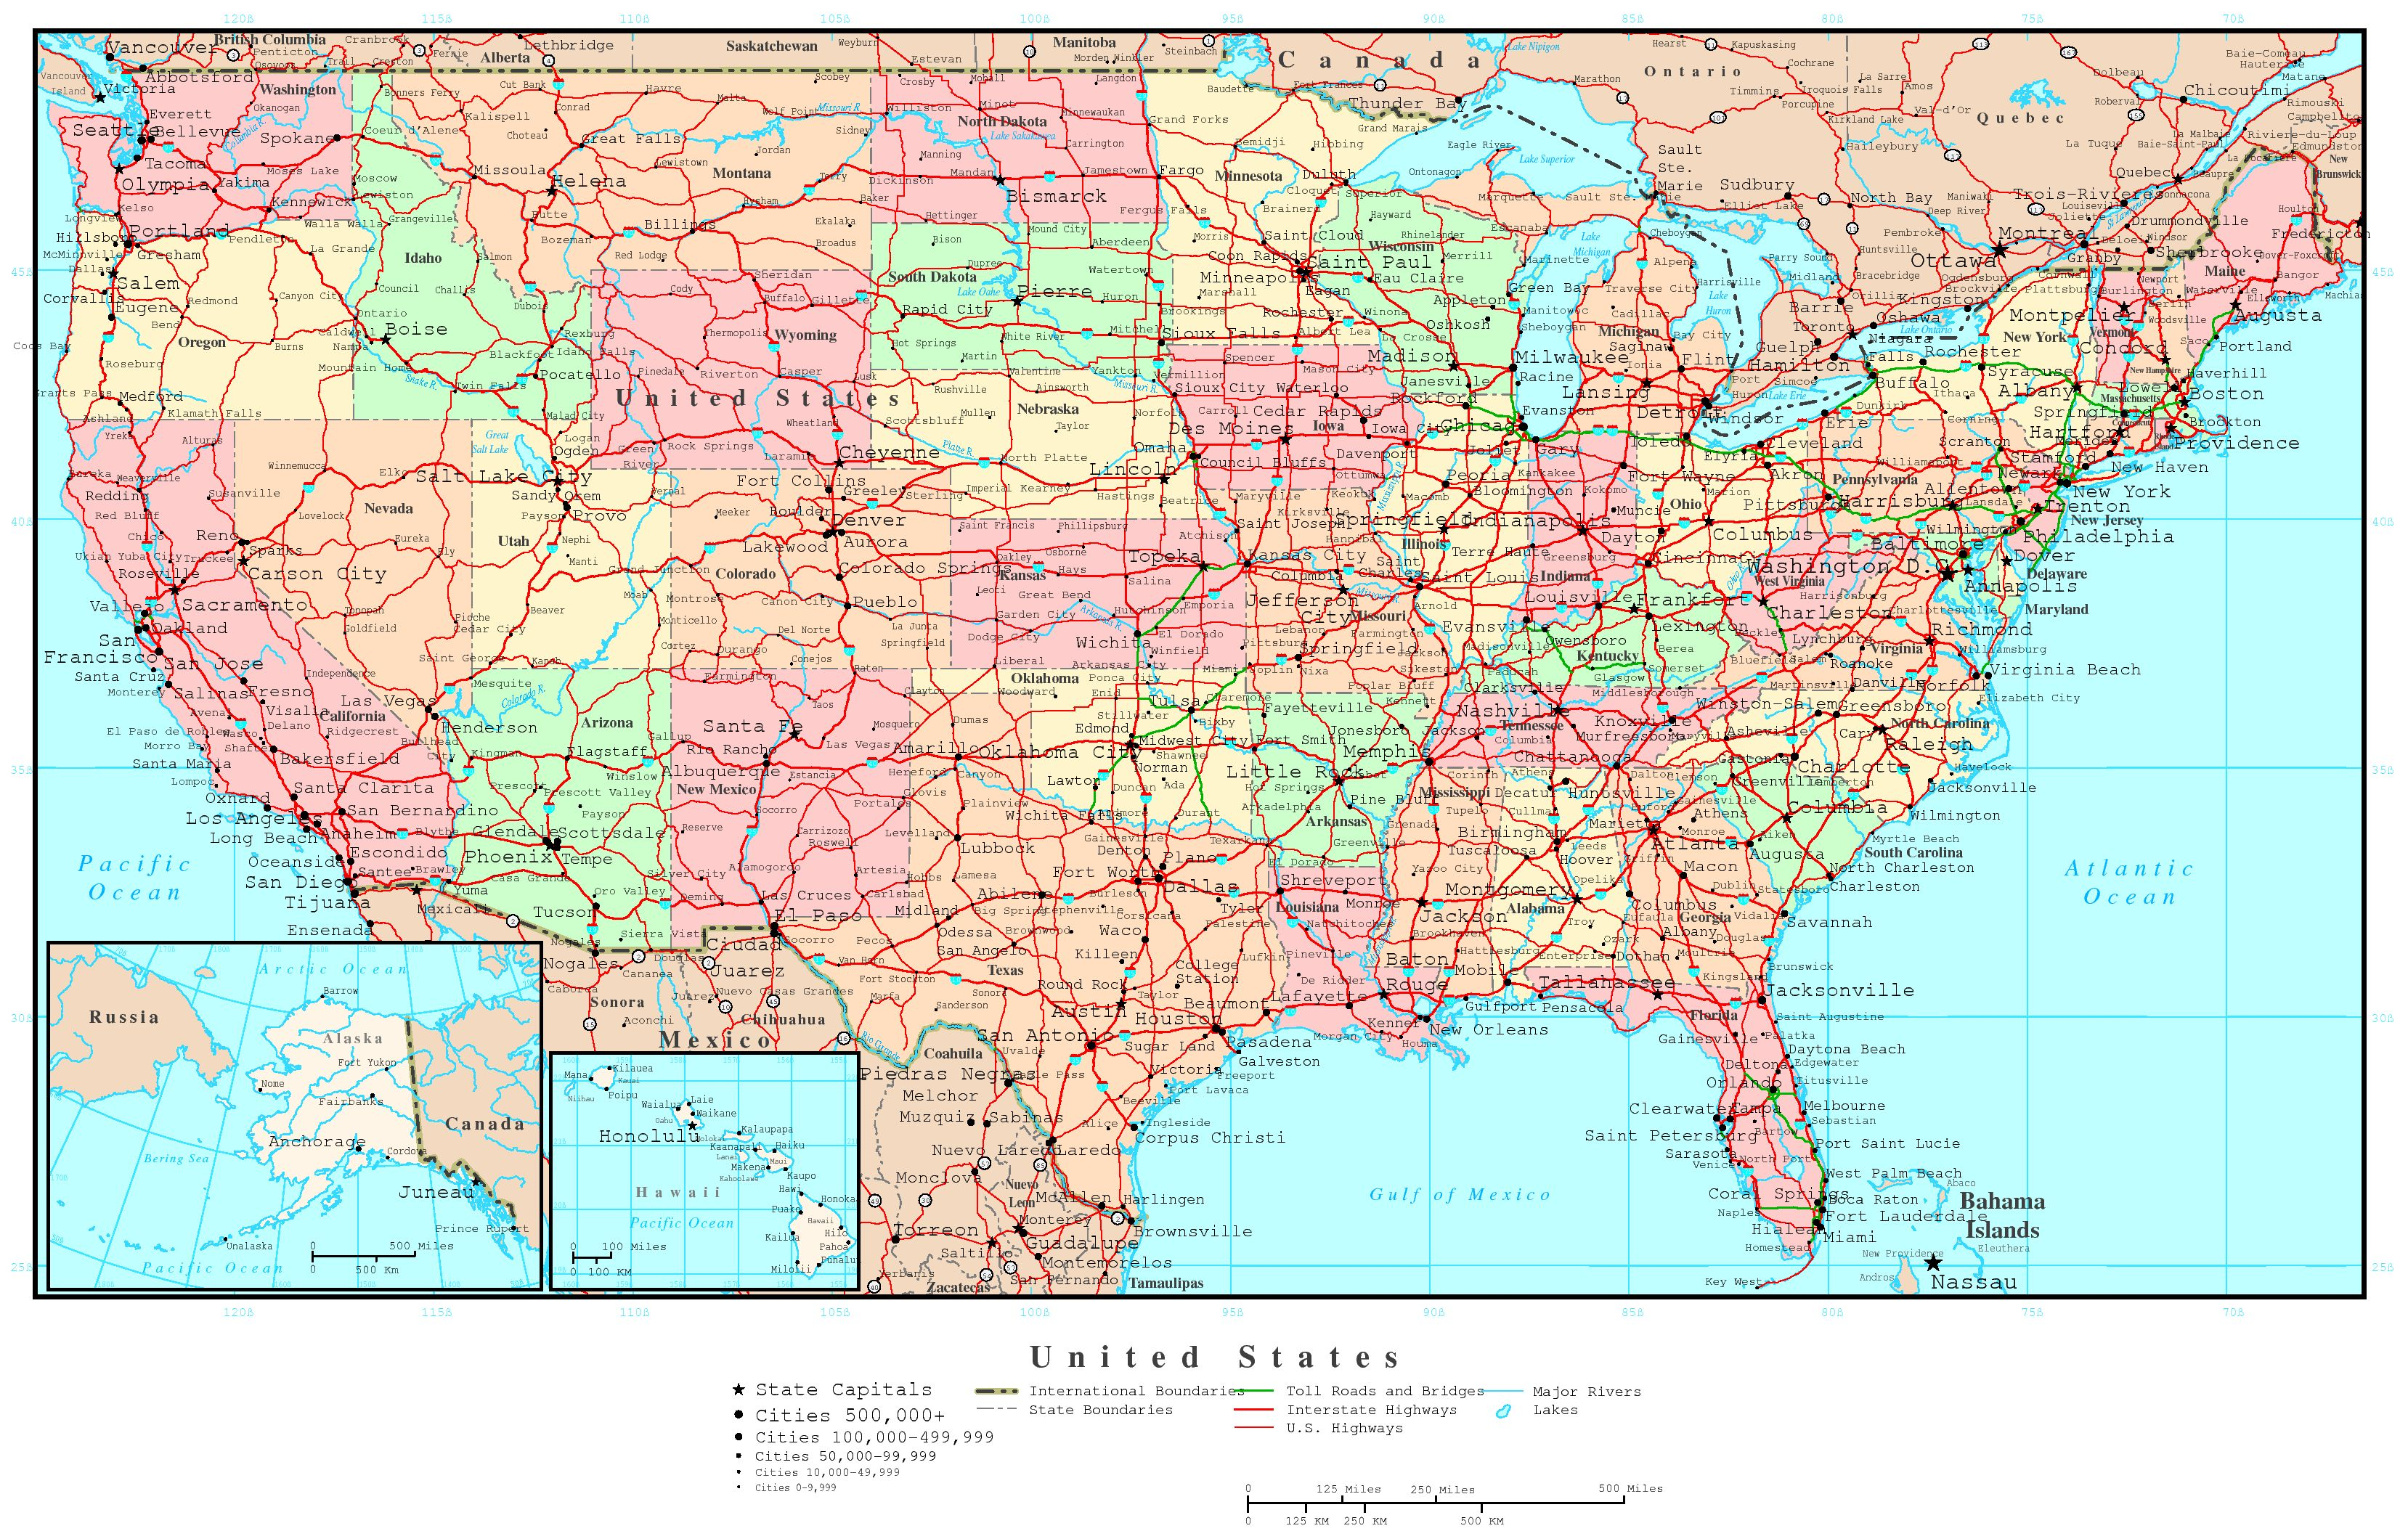 US Road Map Usa General Reference Map Mapsofnet The Crews Travel - Usa road map distances